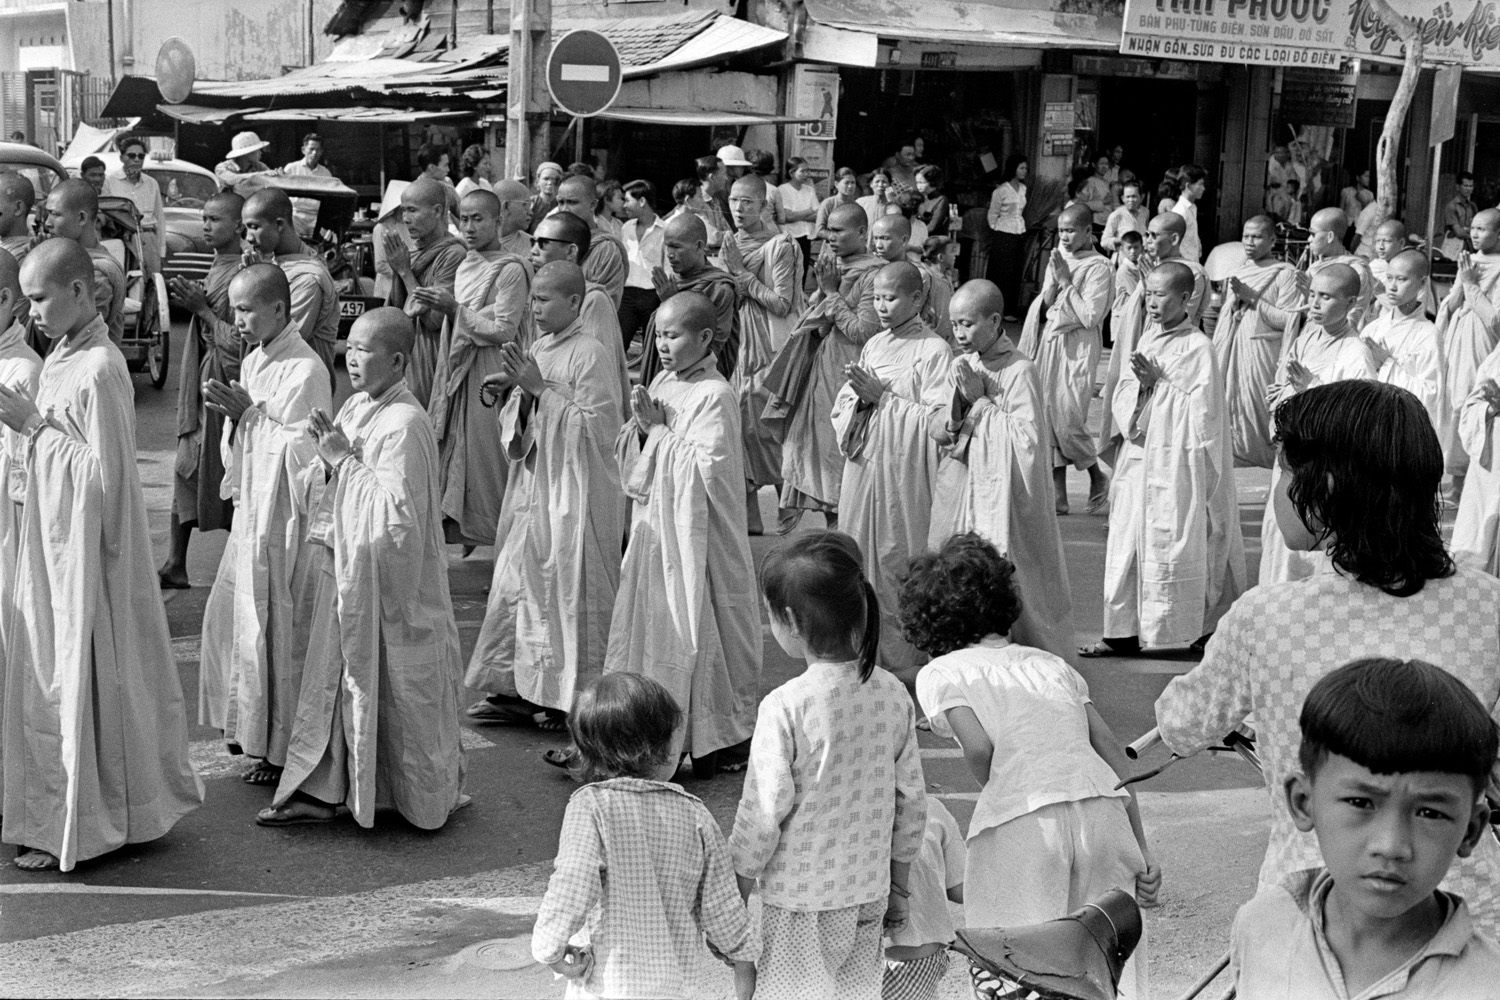 Monks and nuns formed a circle around a Saigon intersection.